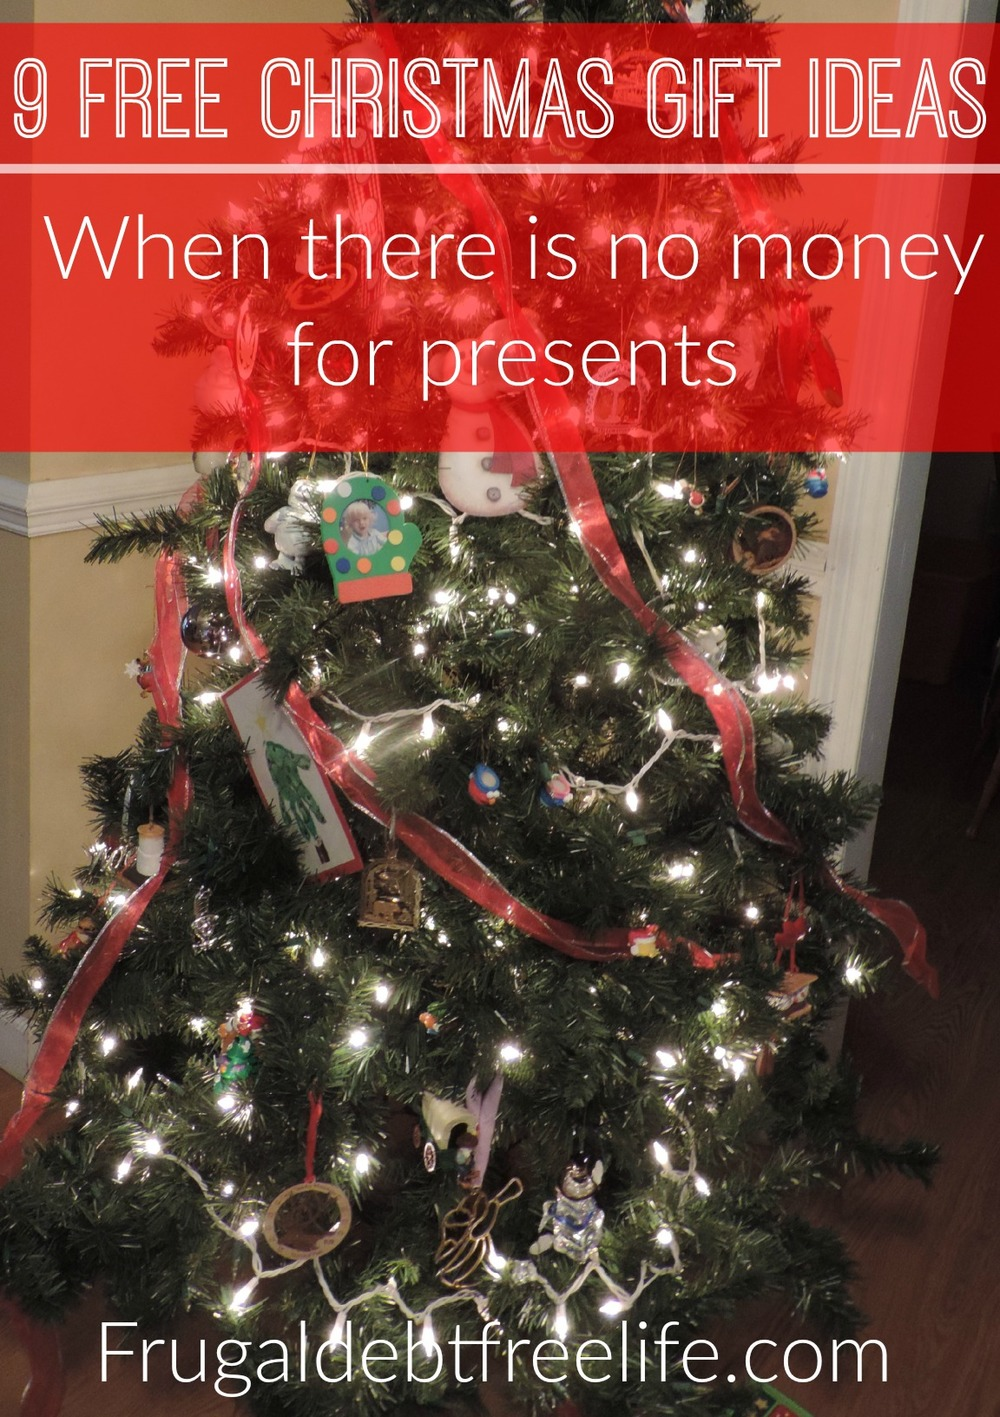 9 Christmas Gifts Ideas that cost $0 — Frugal Debt Free Life